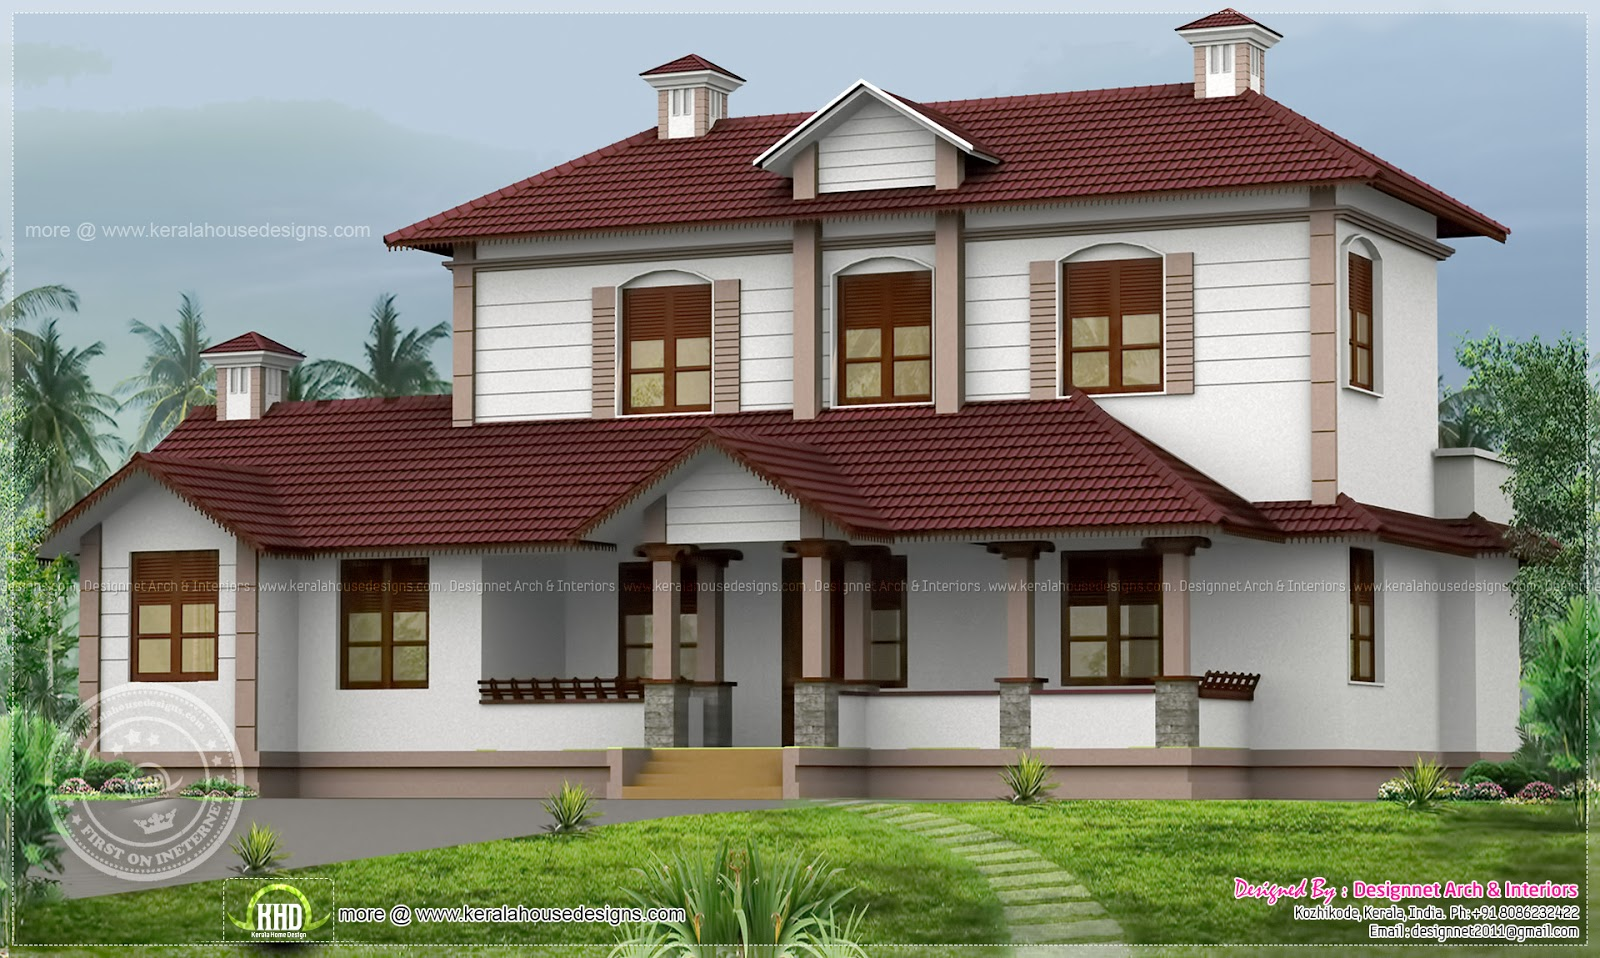 Renovation model of an old house kerala home design and for Model home plans